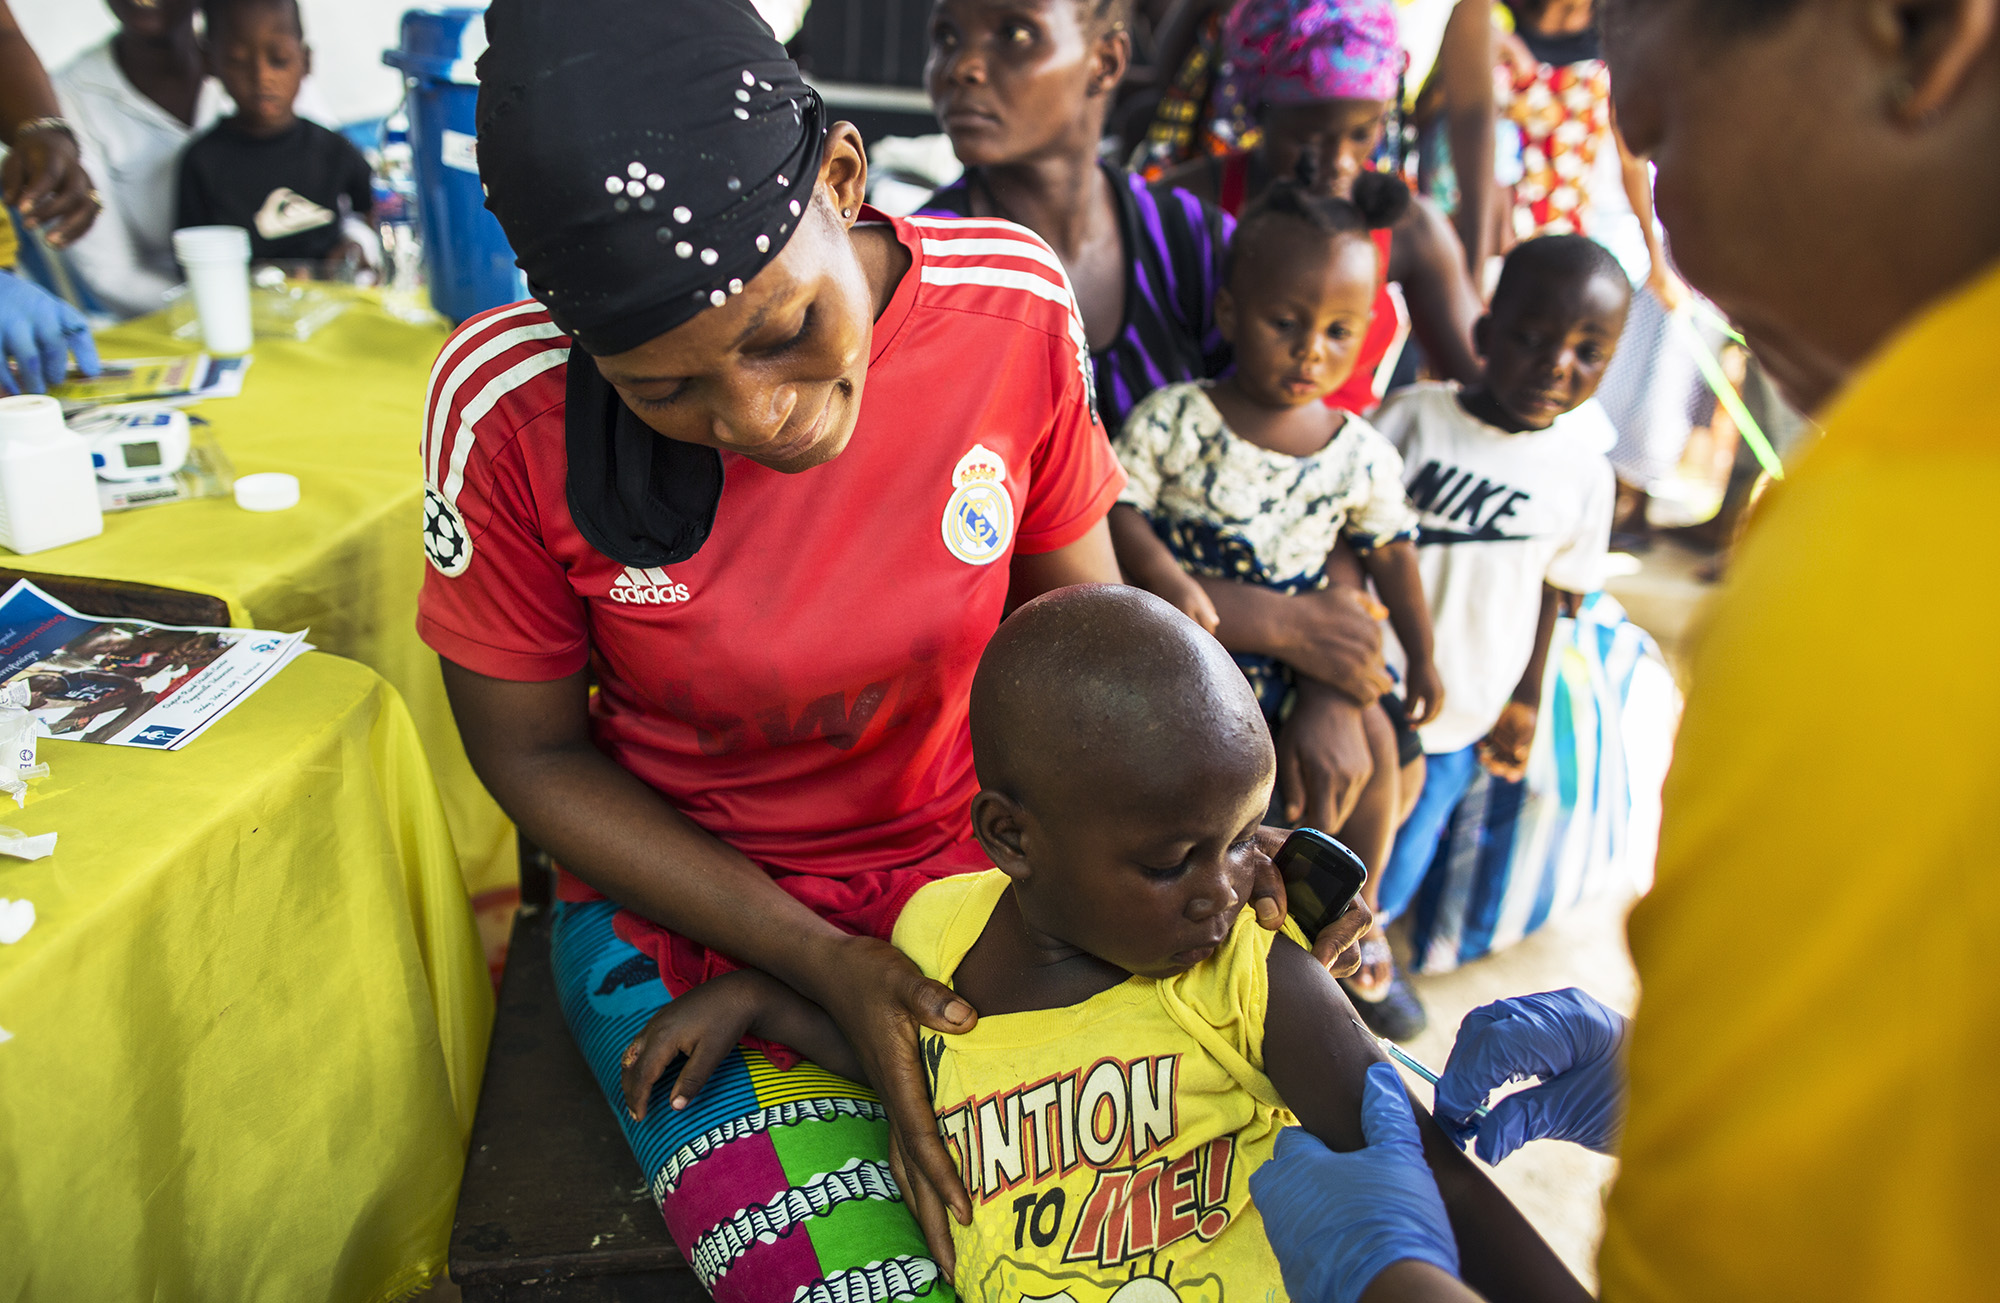 Supported by his mother, Alpha (3) looks on bravely as he receives the measles vaccination.